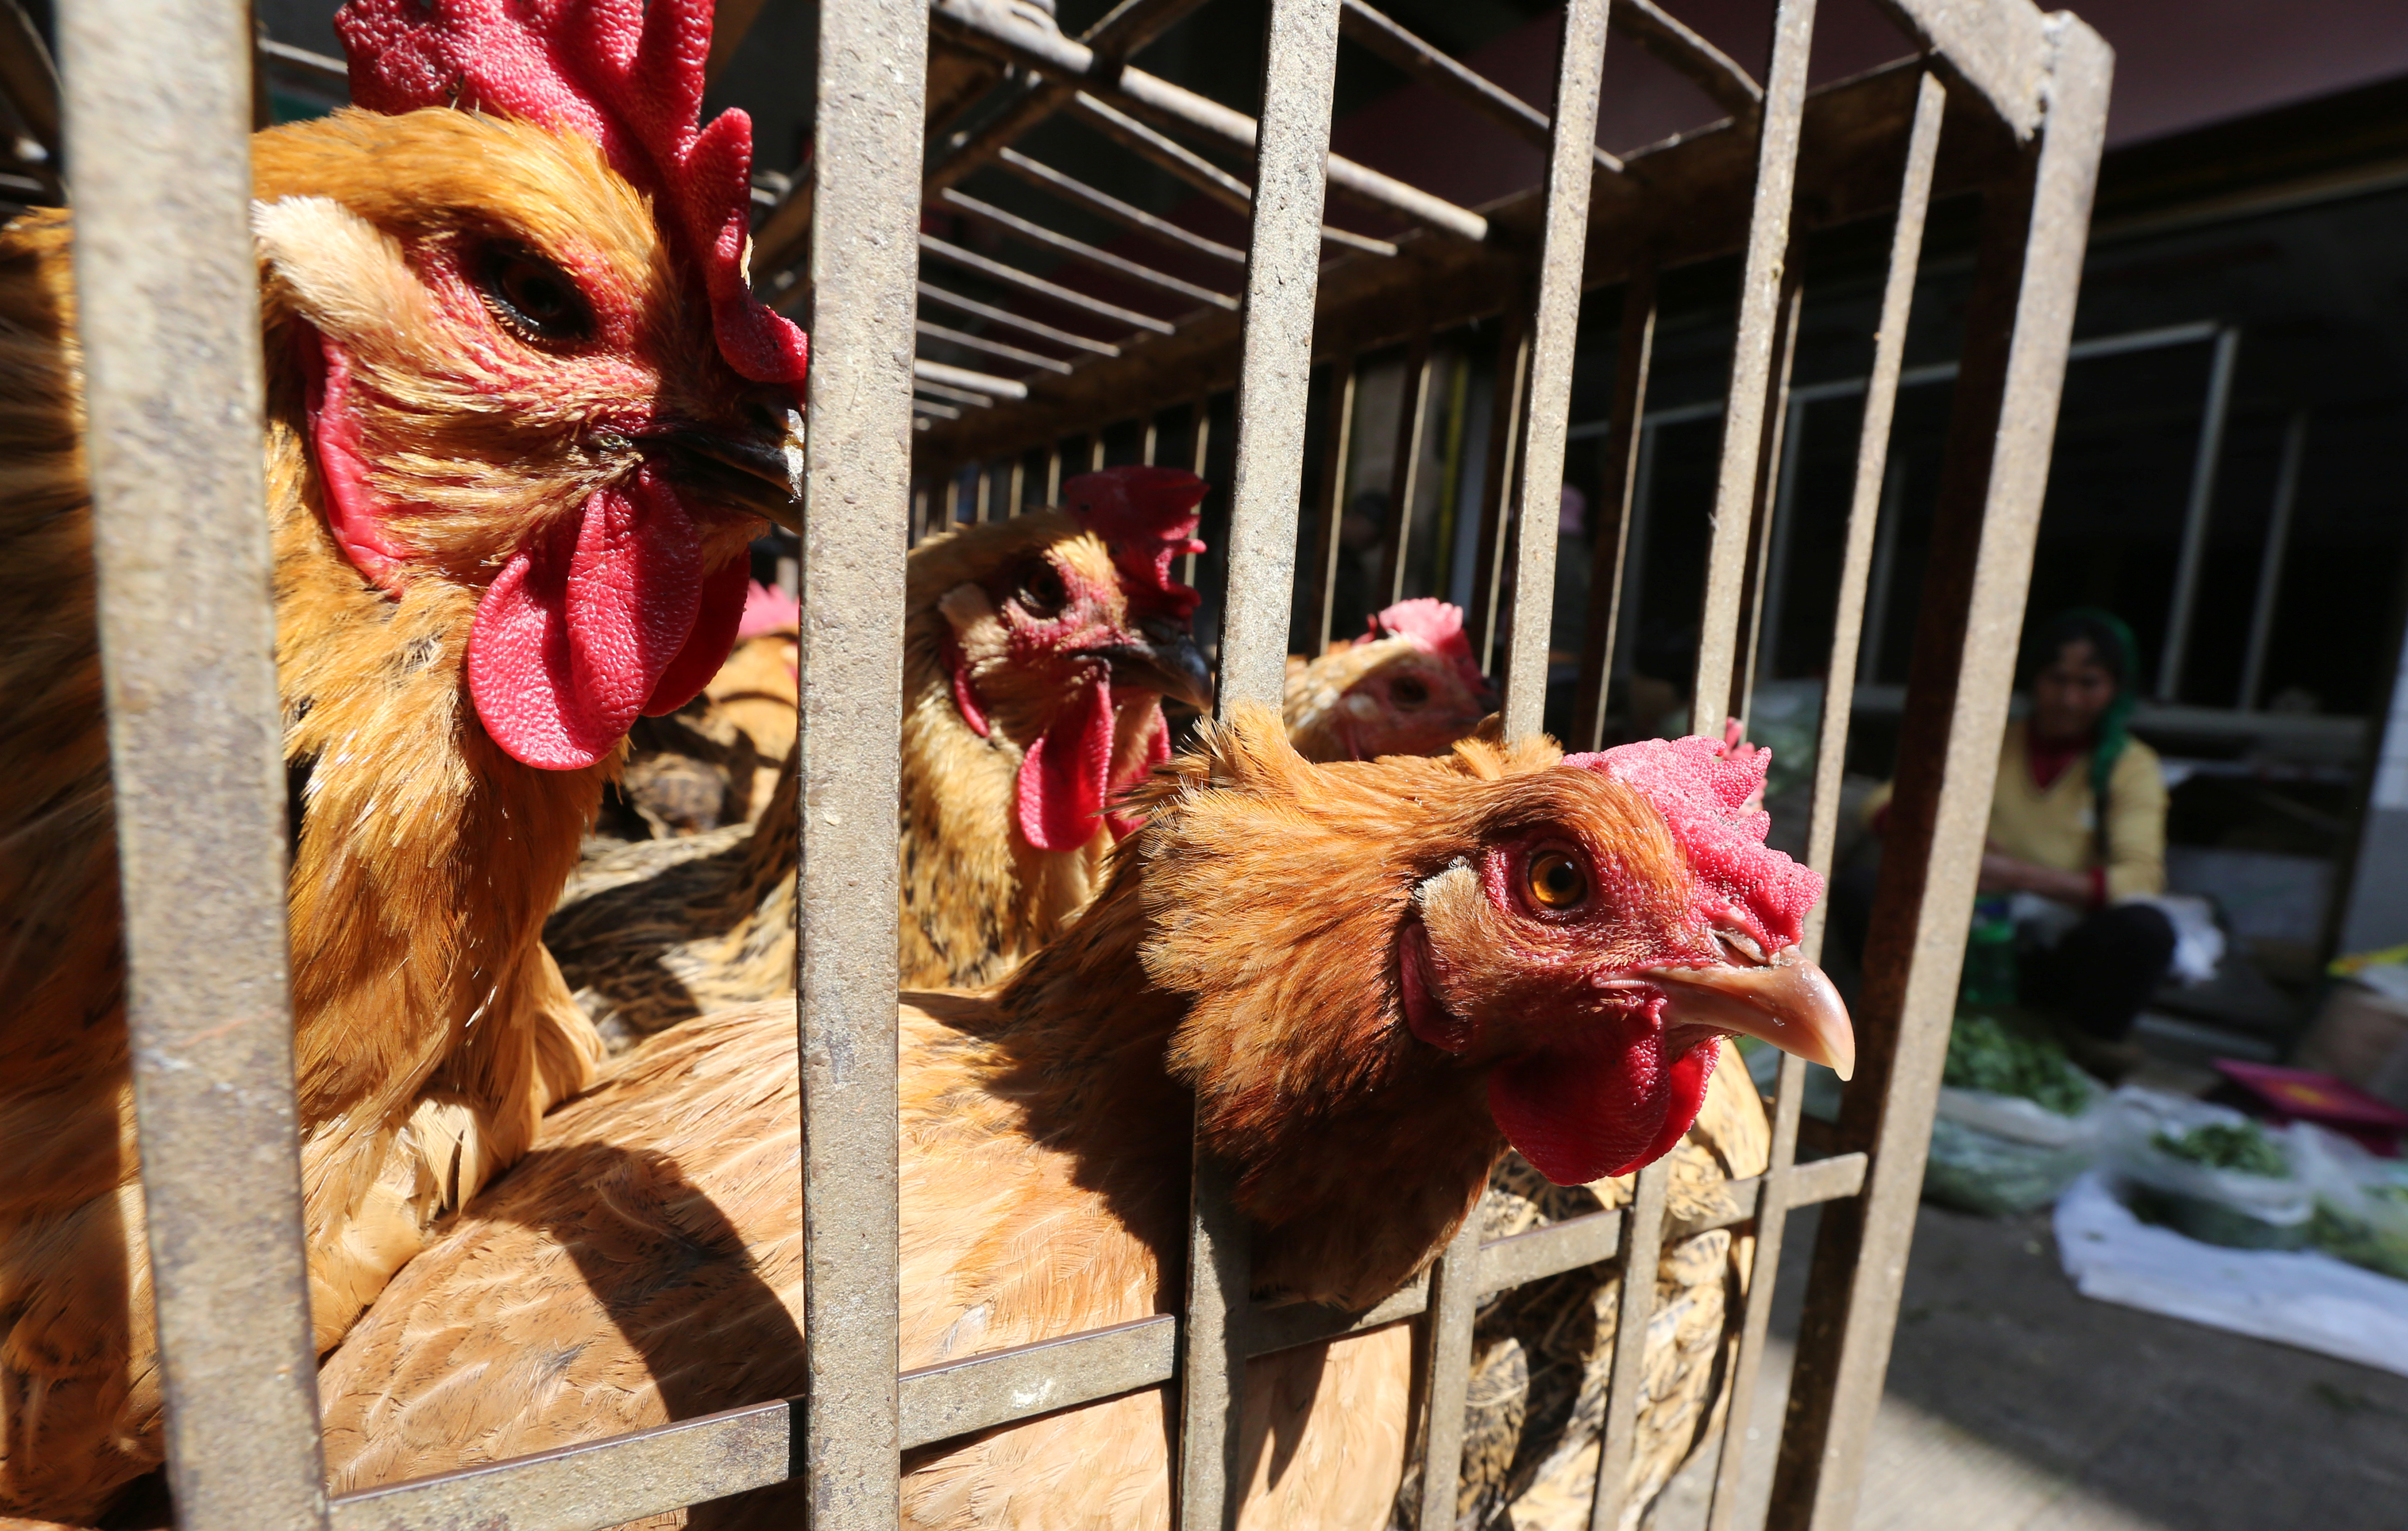 Chickens are seen in a livestock market before the market asked to stop trading on March 1 in prevention of bird flu transmission, in Kunming, Yunnan province, China, February 22, 2017. REUTERS/Stringer